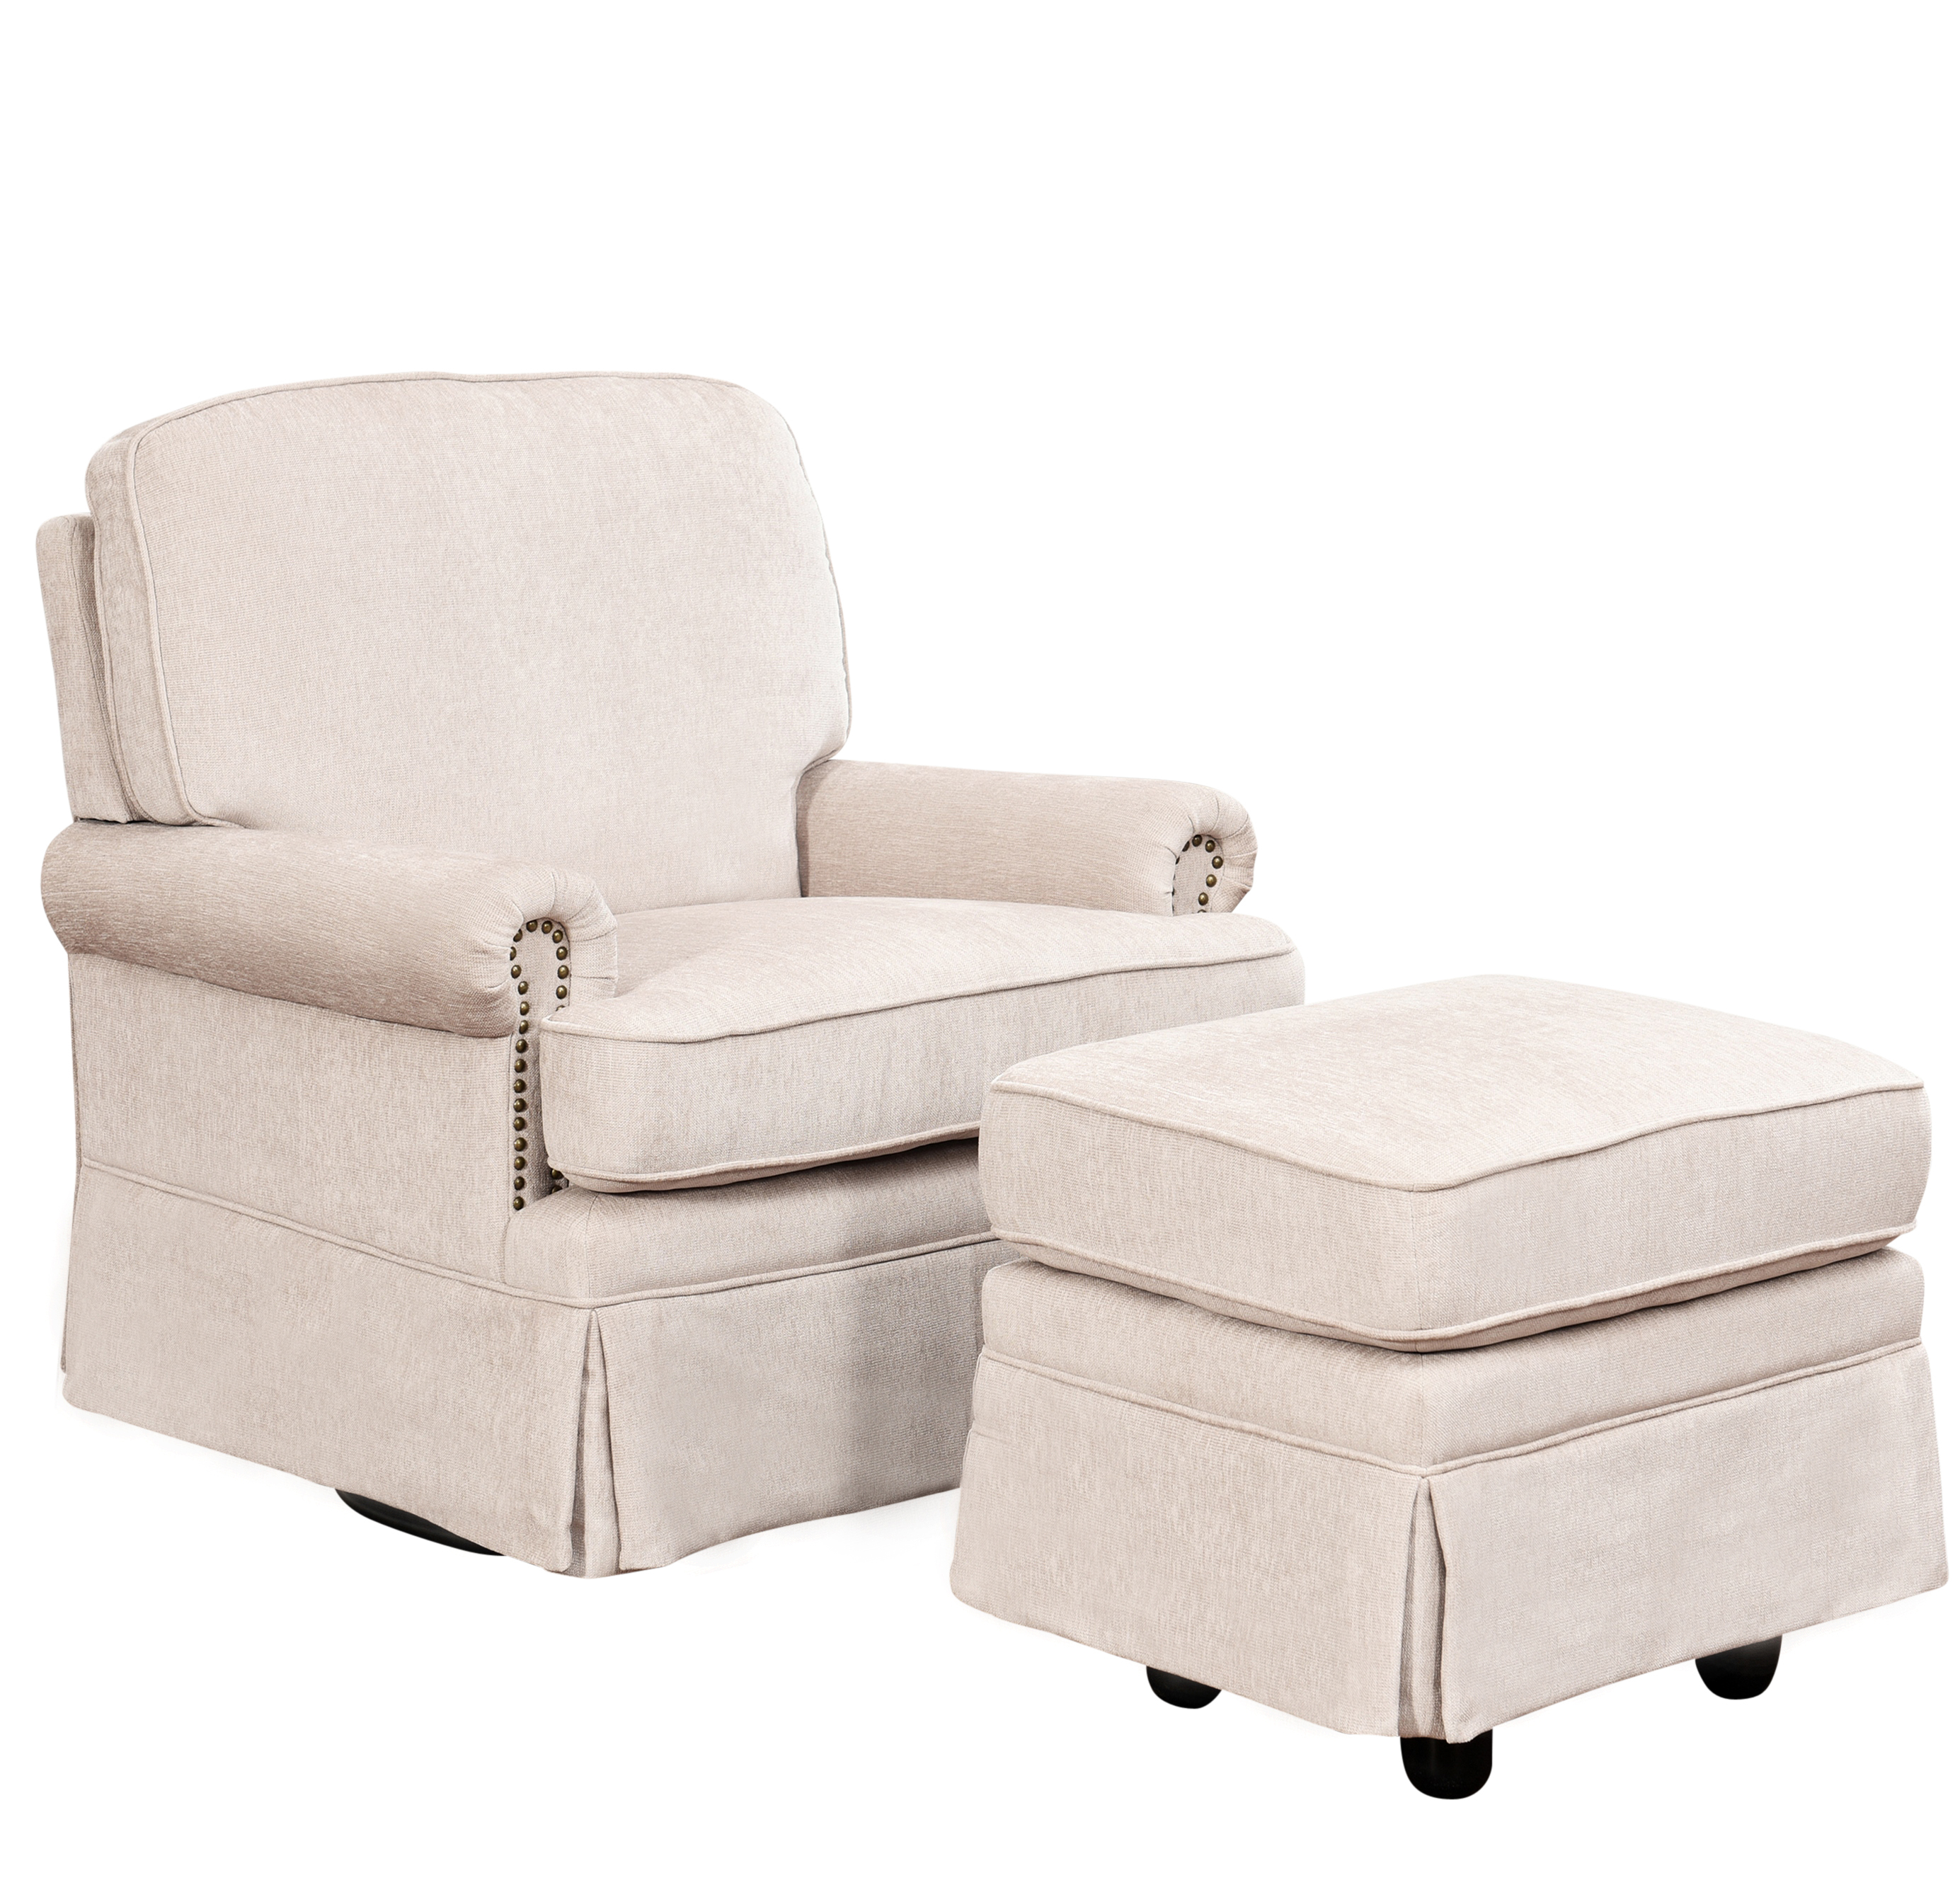 Gliding Chair Gliding Chair With Ottoman